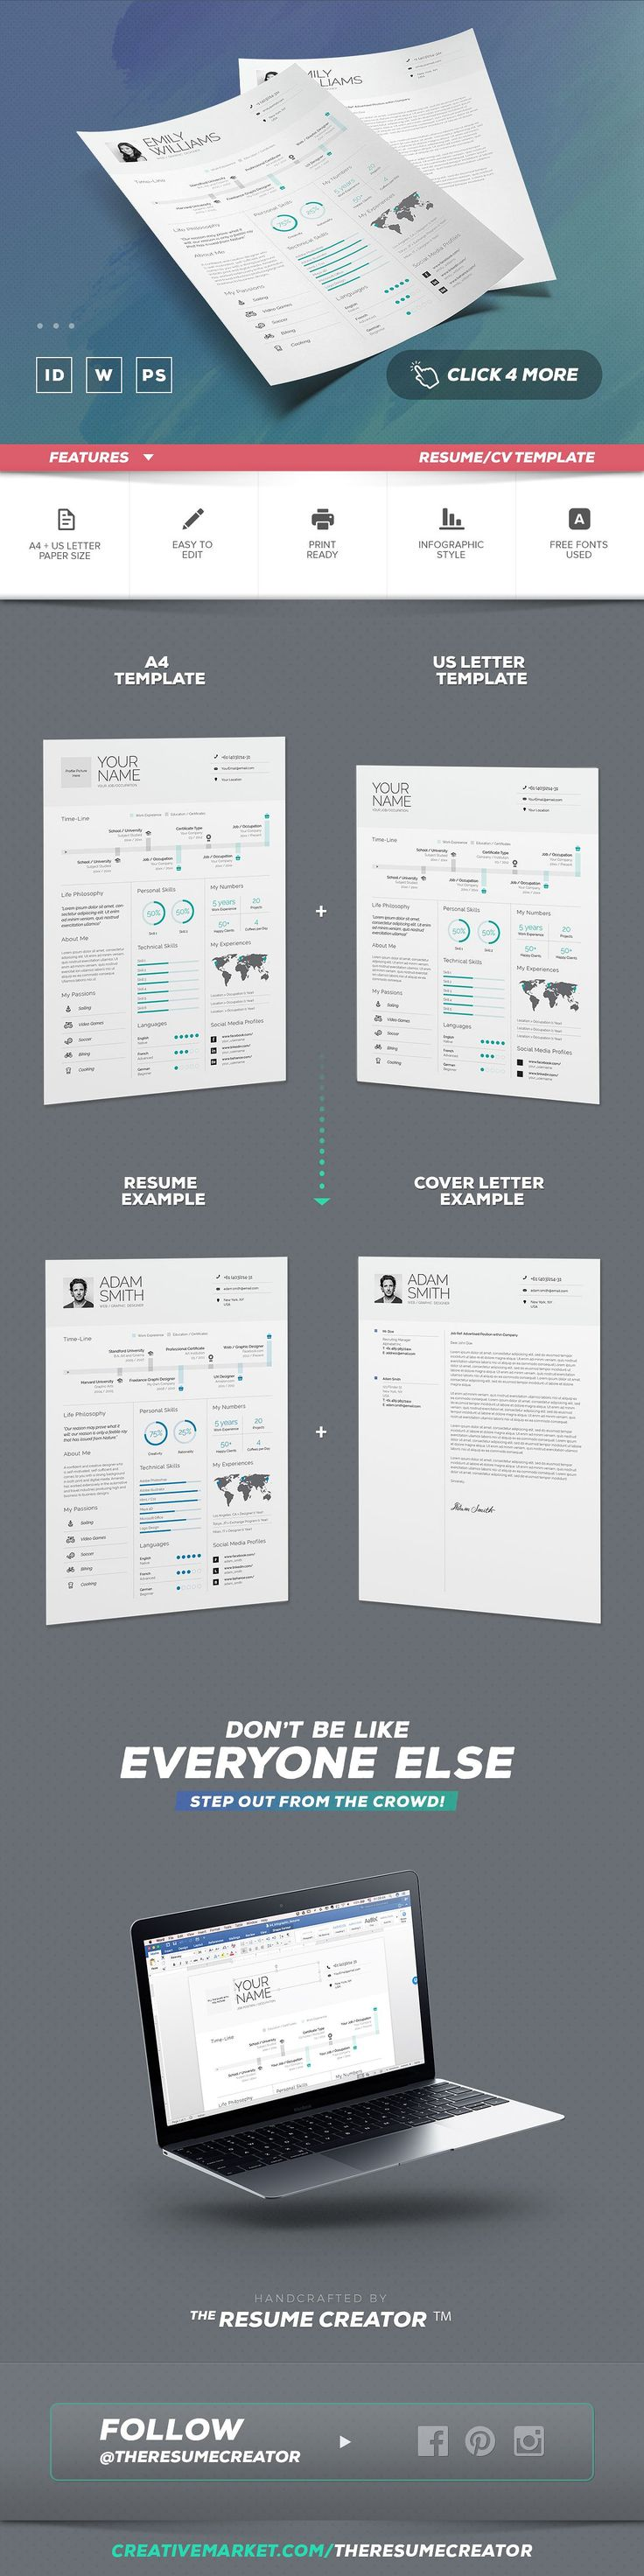 Infographic Resume/Cv Template Vol.8 by TheResumeCreator on @creativemarket